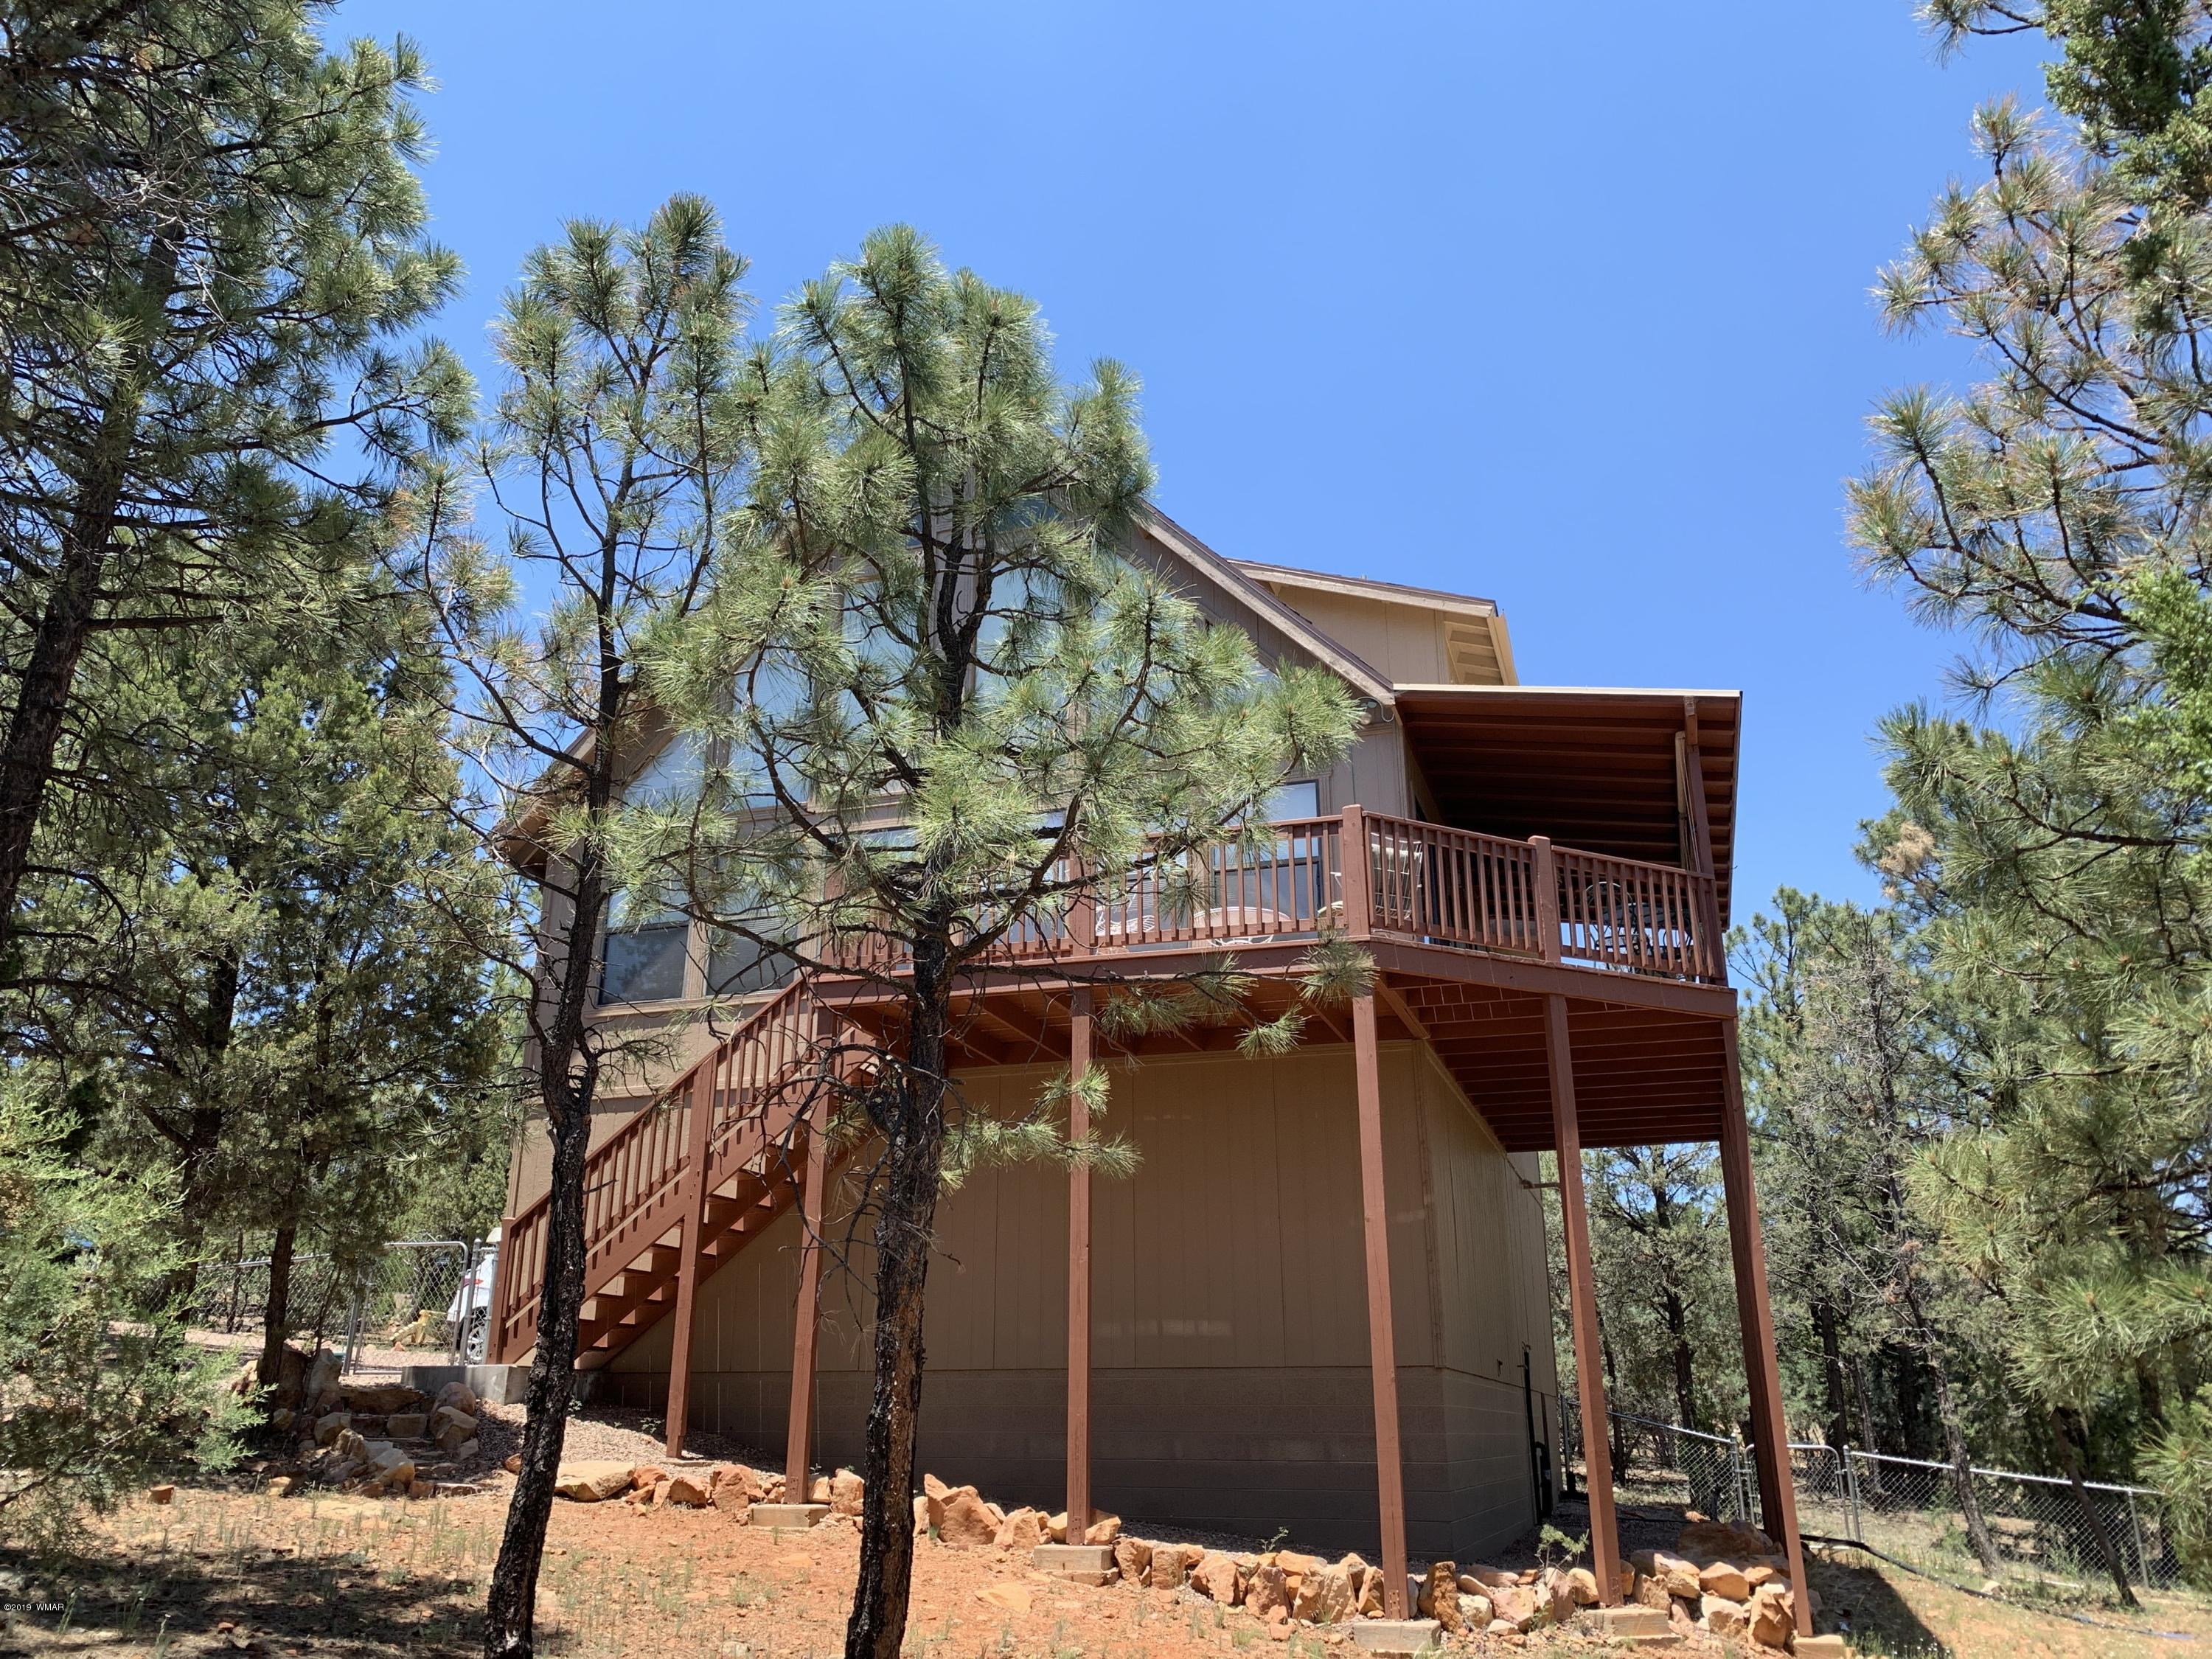 This is the home you have been looking for. You feel perched on top of the world.   The 2 story vaulted ceiling has the wall of windows to enjoy the endless panoramic ponderosa pine views. Open the door to the open floor plan feel. Cozy kitchen w/ breakfast bar & dining area. The living room has the WALL of WINDOWS bringing the outdoors in. Main floor features 2 bedrooms w/ full bath.  The master retreat offers a loft which is perfect for a relaxing space or office.  The master is large w/ a walk in closet & en suite bathroom w/ jetted tub & bidet.Lower level is the entrance of garage and provides the laundry area w/ workshop & storage. Bonus area is ready for your final touches to offer even further rooms for entertainment.  Decks & fenced yard for outdoor enjoyment. So much to ment